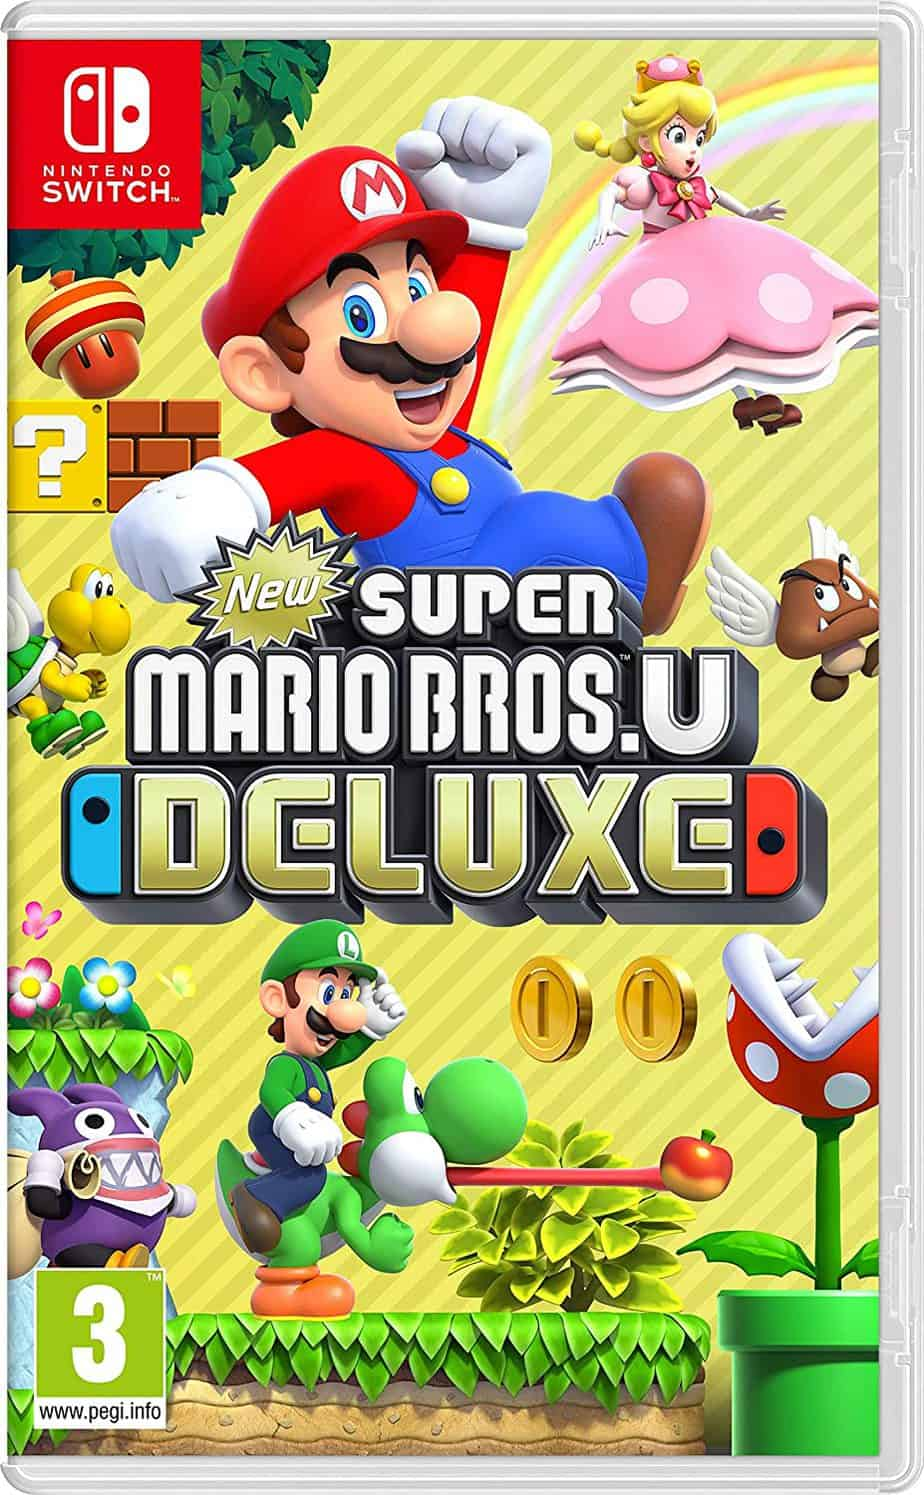 Best Mario Games - Super Mario Bros U Deluxe